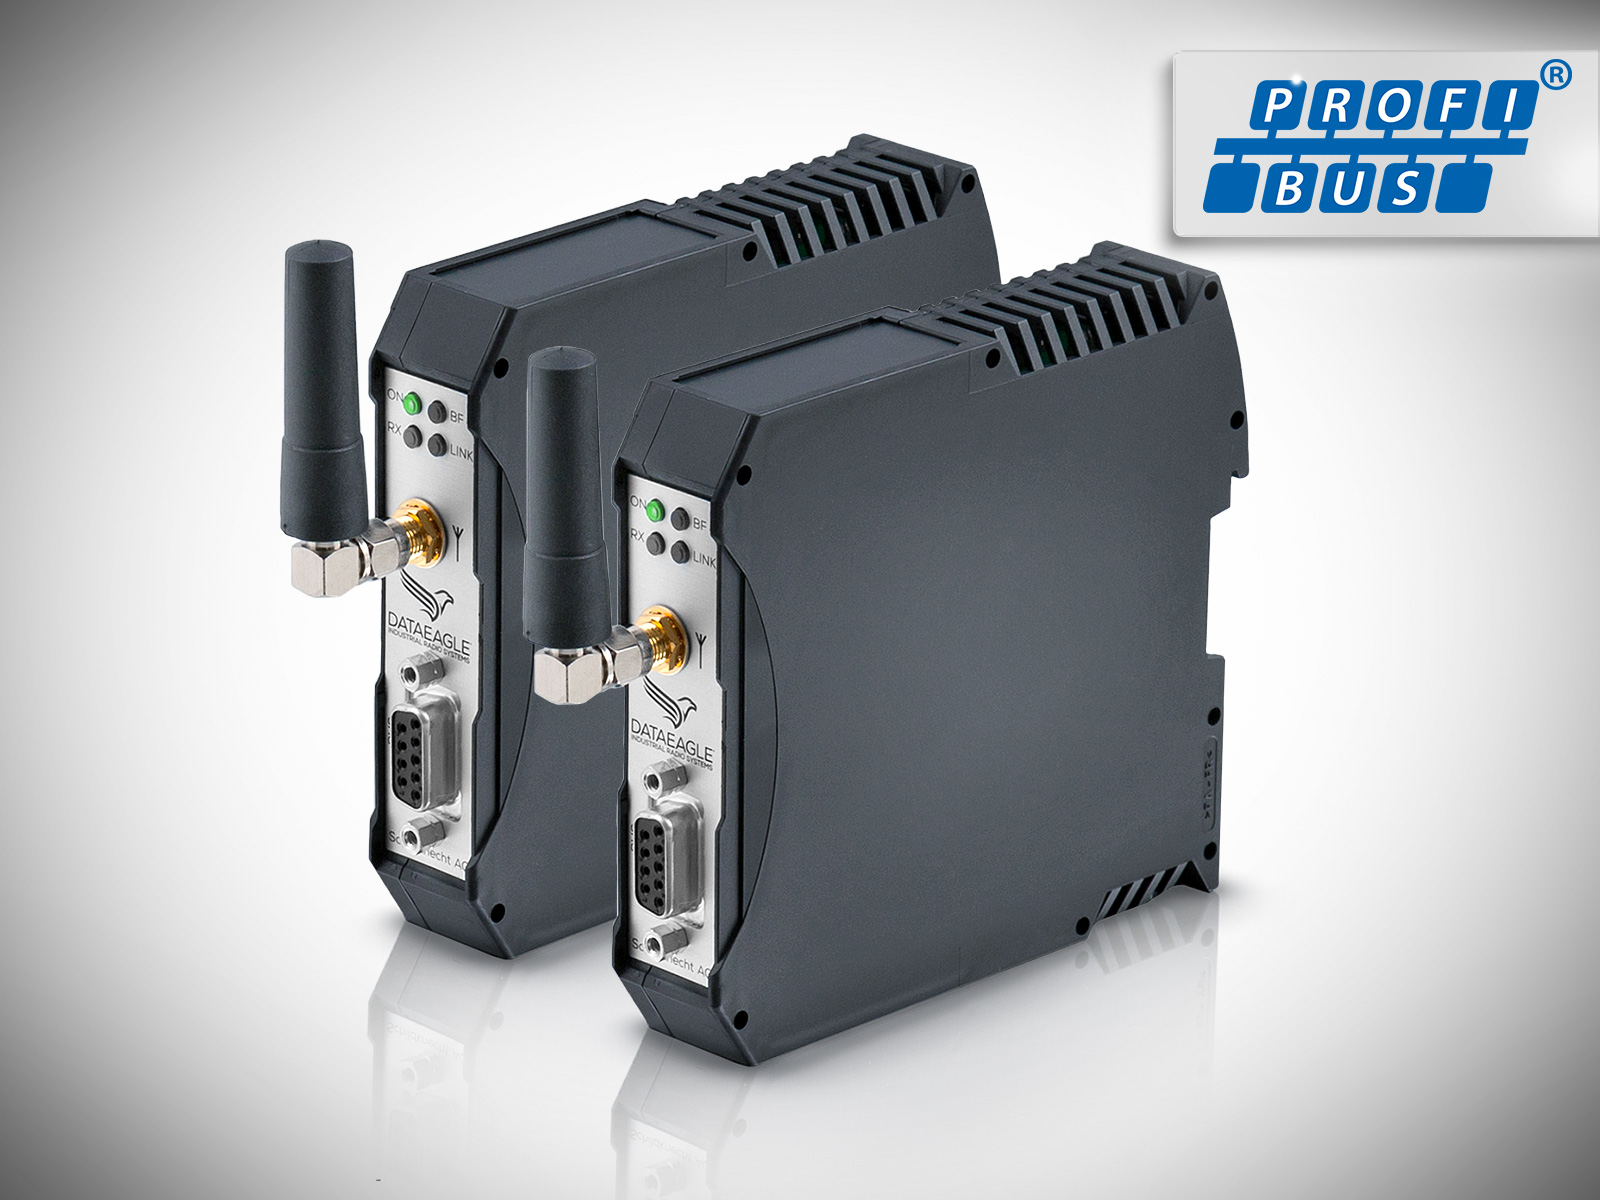 Wireless PROFIBUS • Our product line DATAEAGLE 3000 was developed especially for Wireless PROFIBUS.